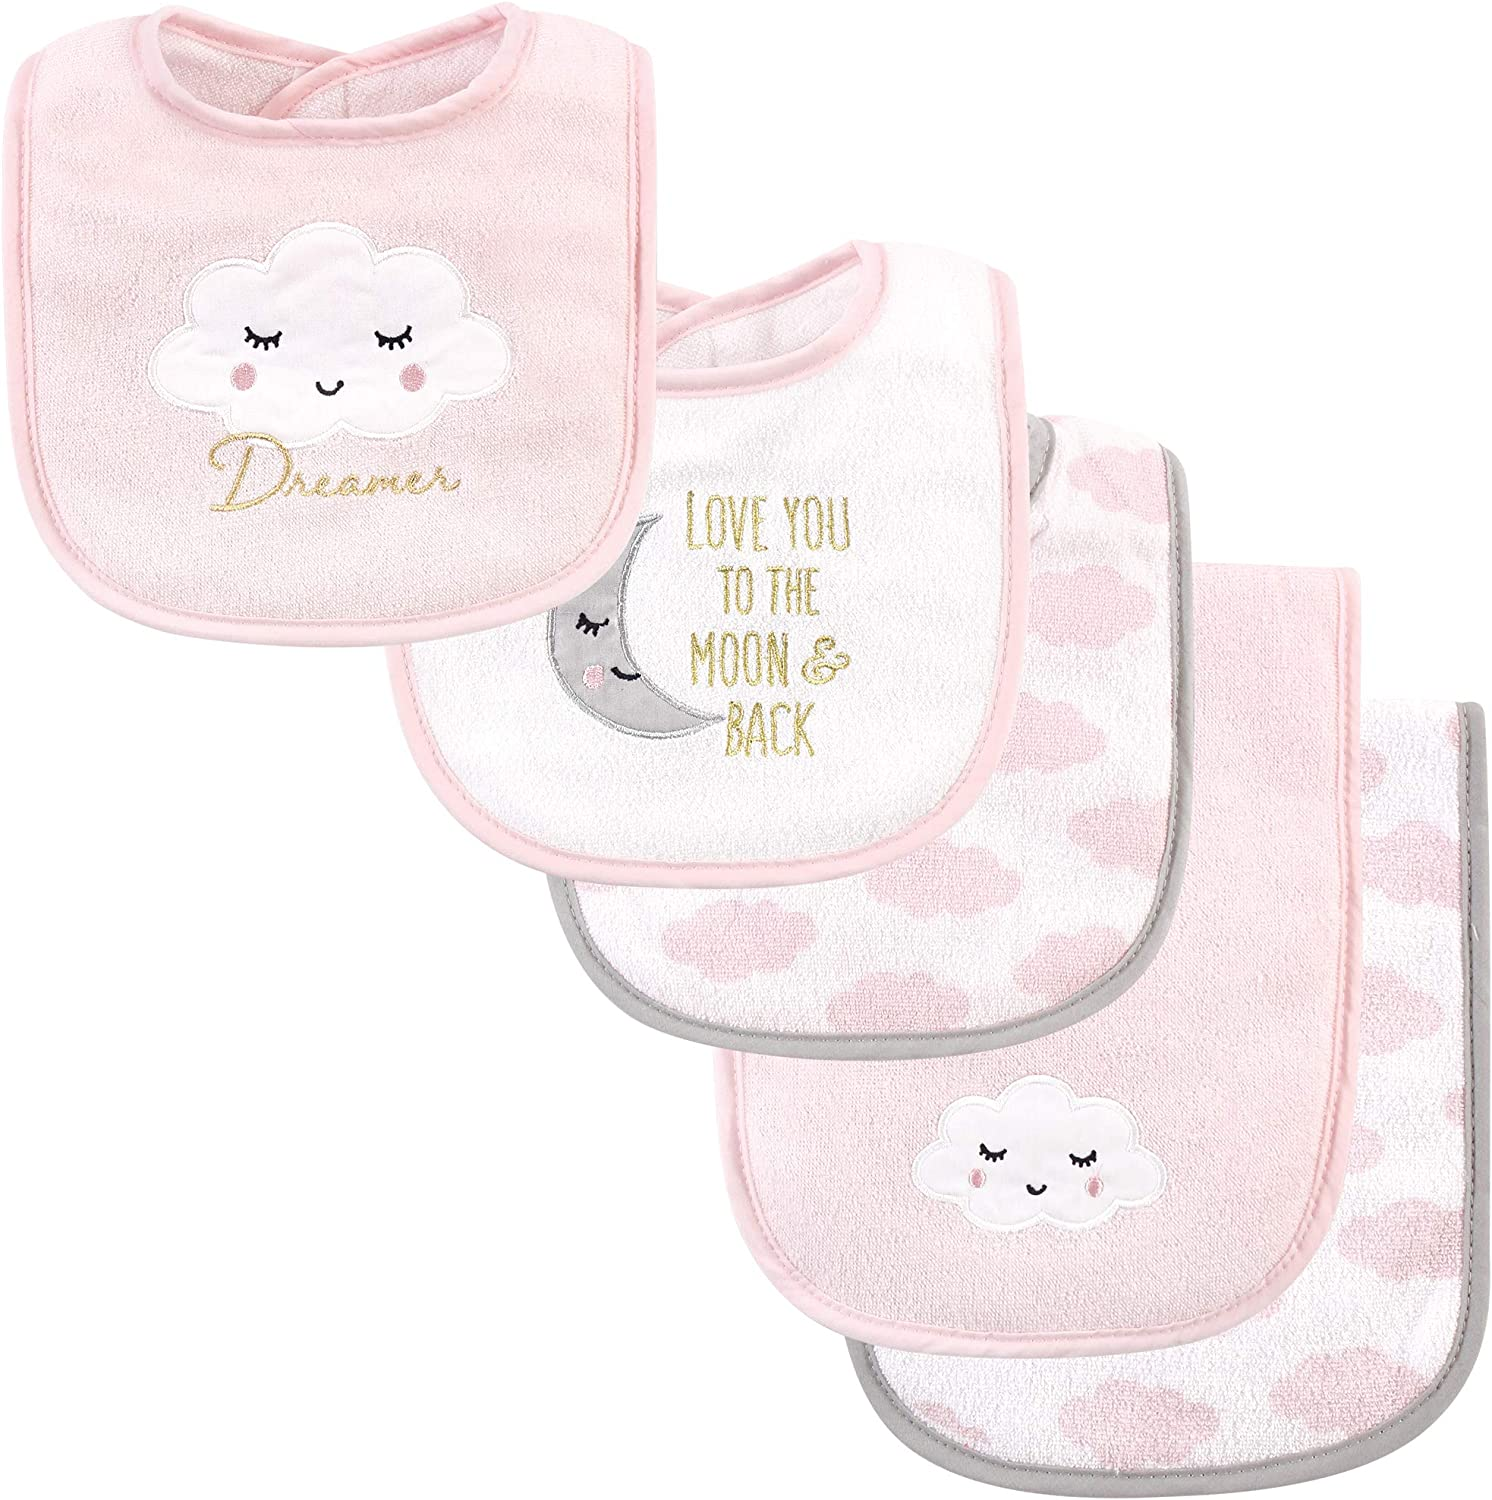 Hudson Baby Unisex Baby Cotton Terry Bib and Burp Cloth Set, Dreamer, One Size: Baby